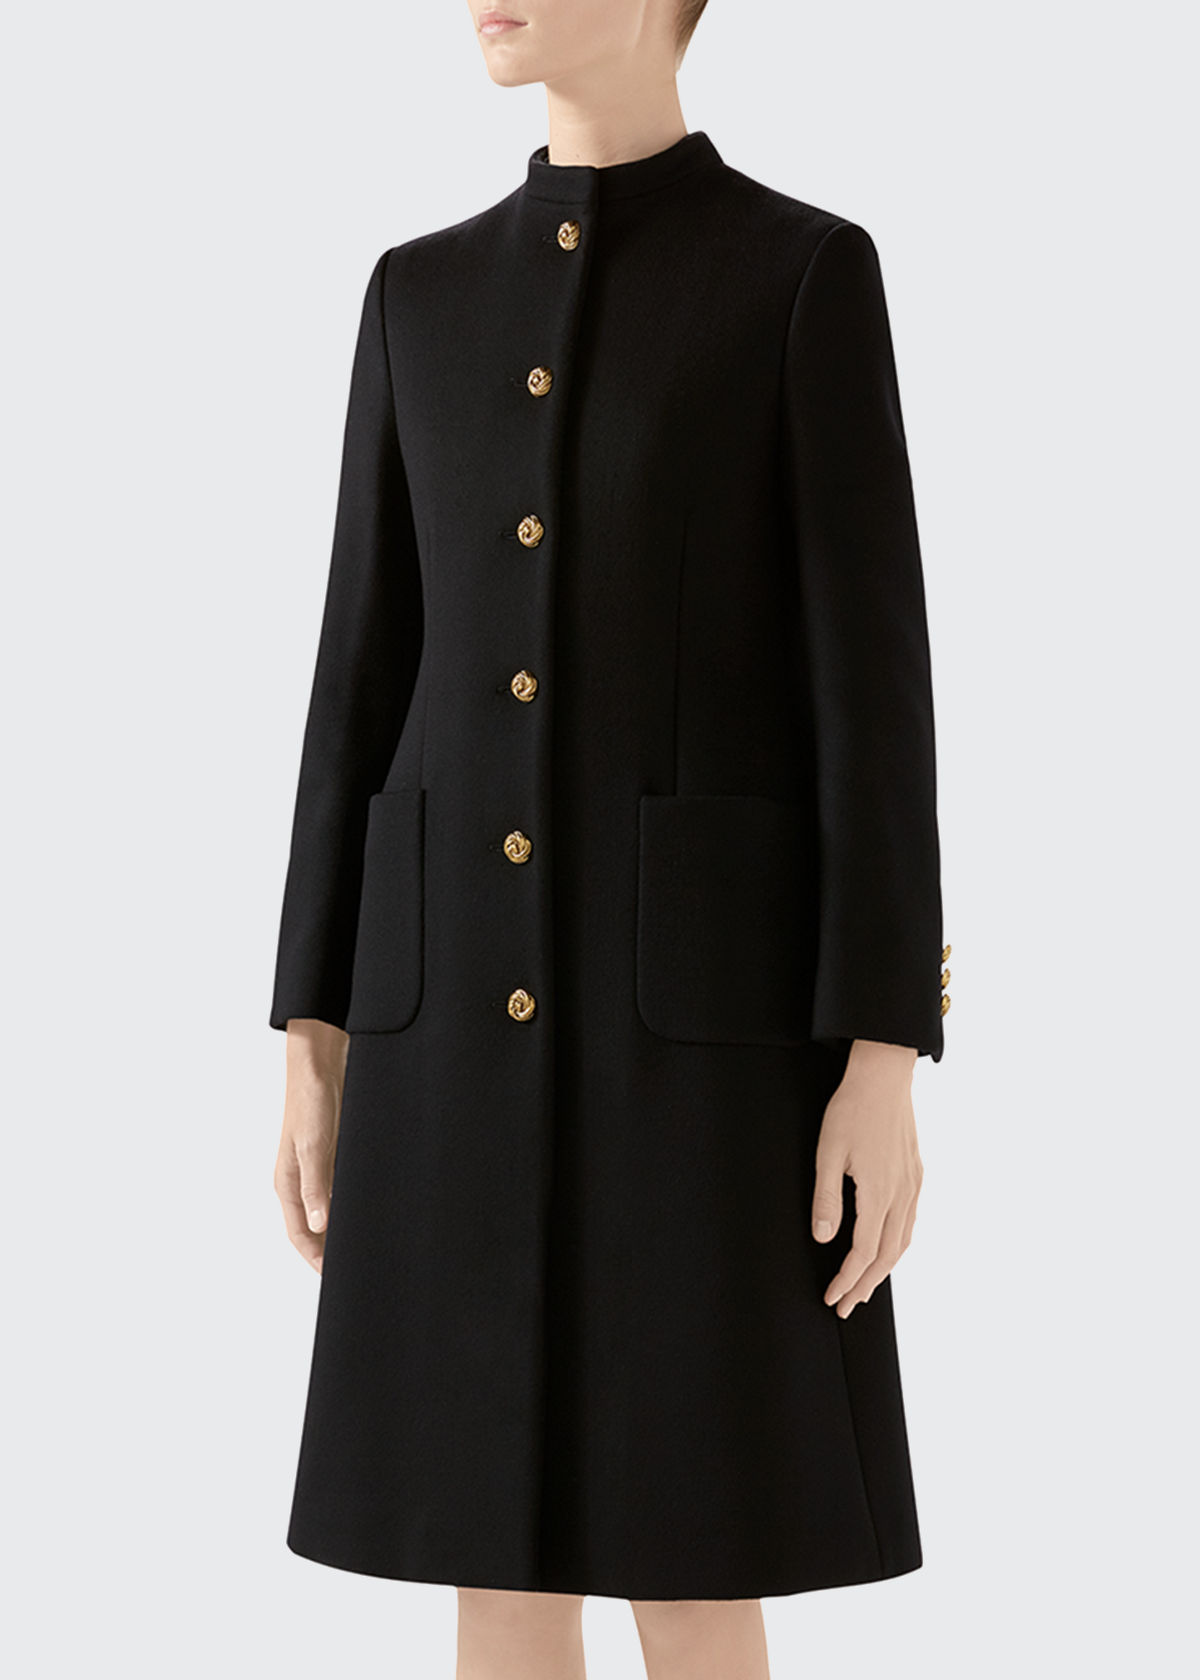 Gucci Coats WOOL COAT WITH KNOT BUTTONS W/ UPDATED GG BACK